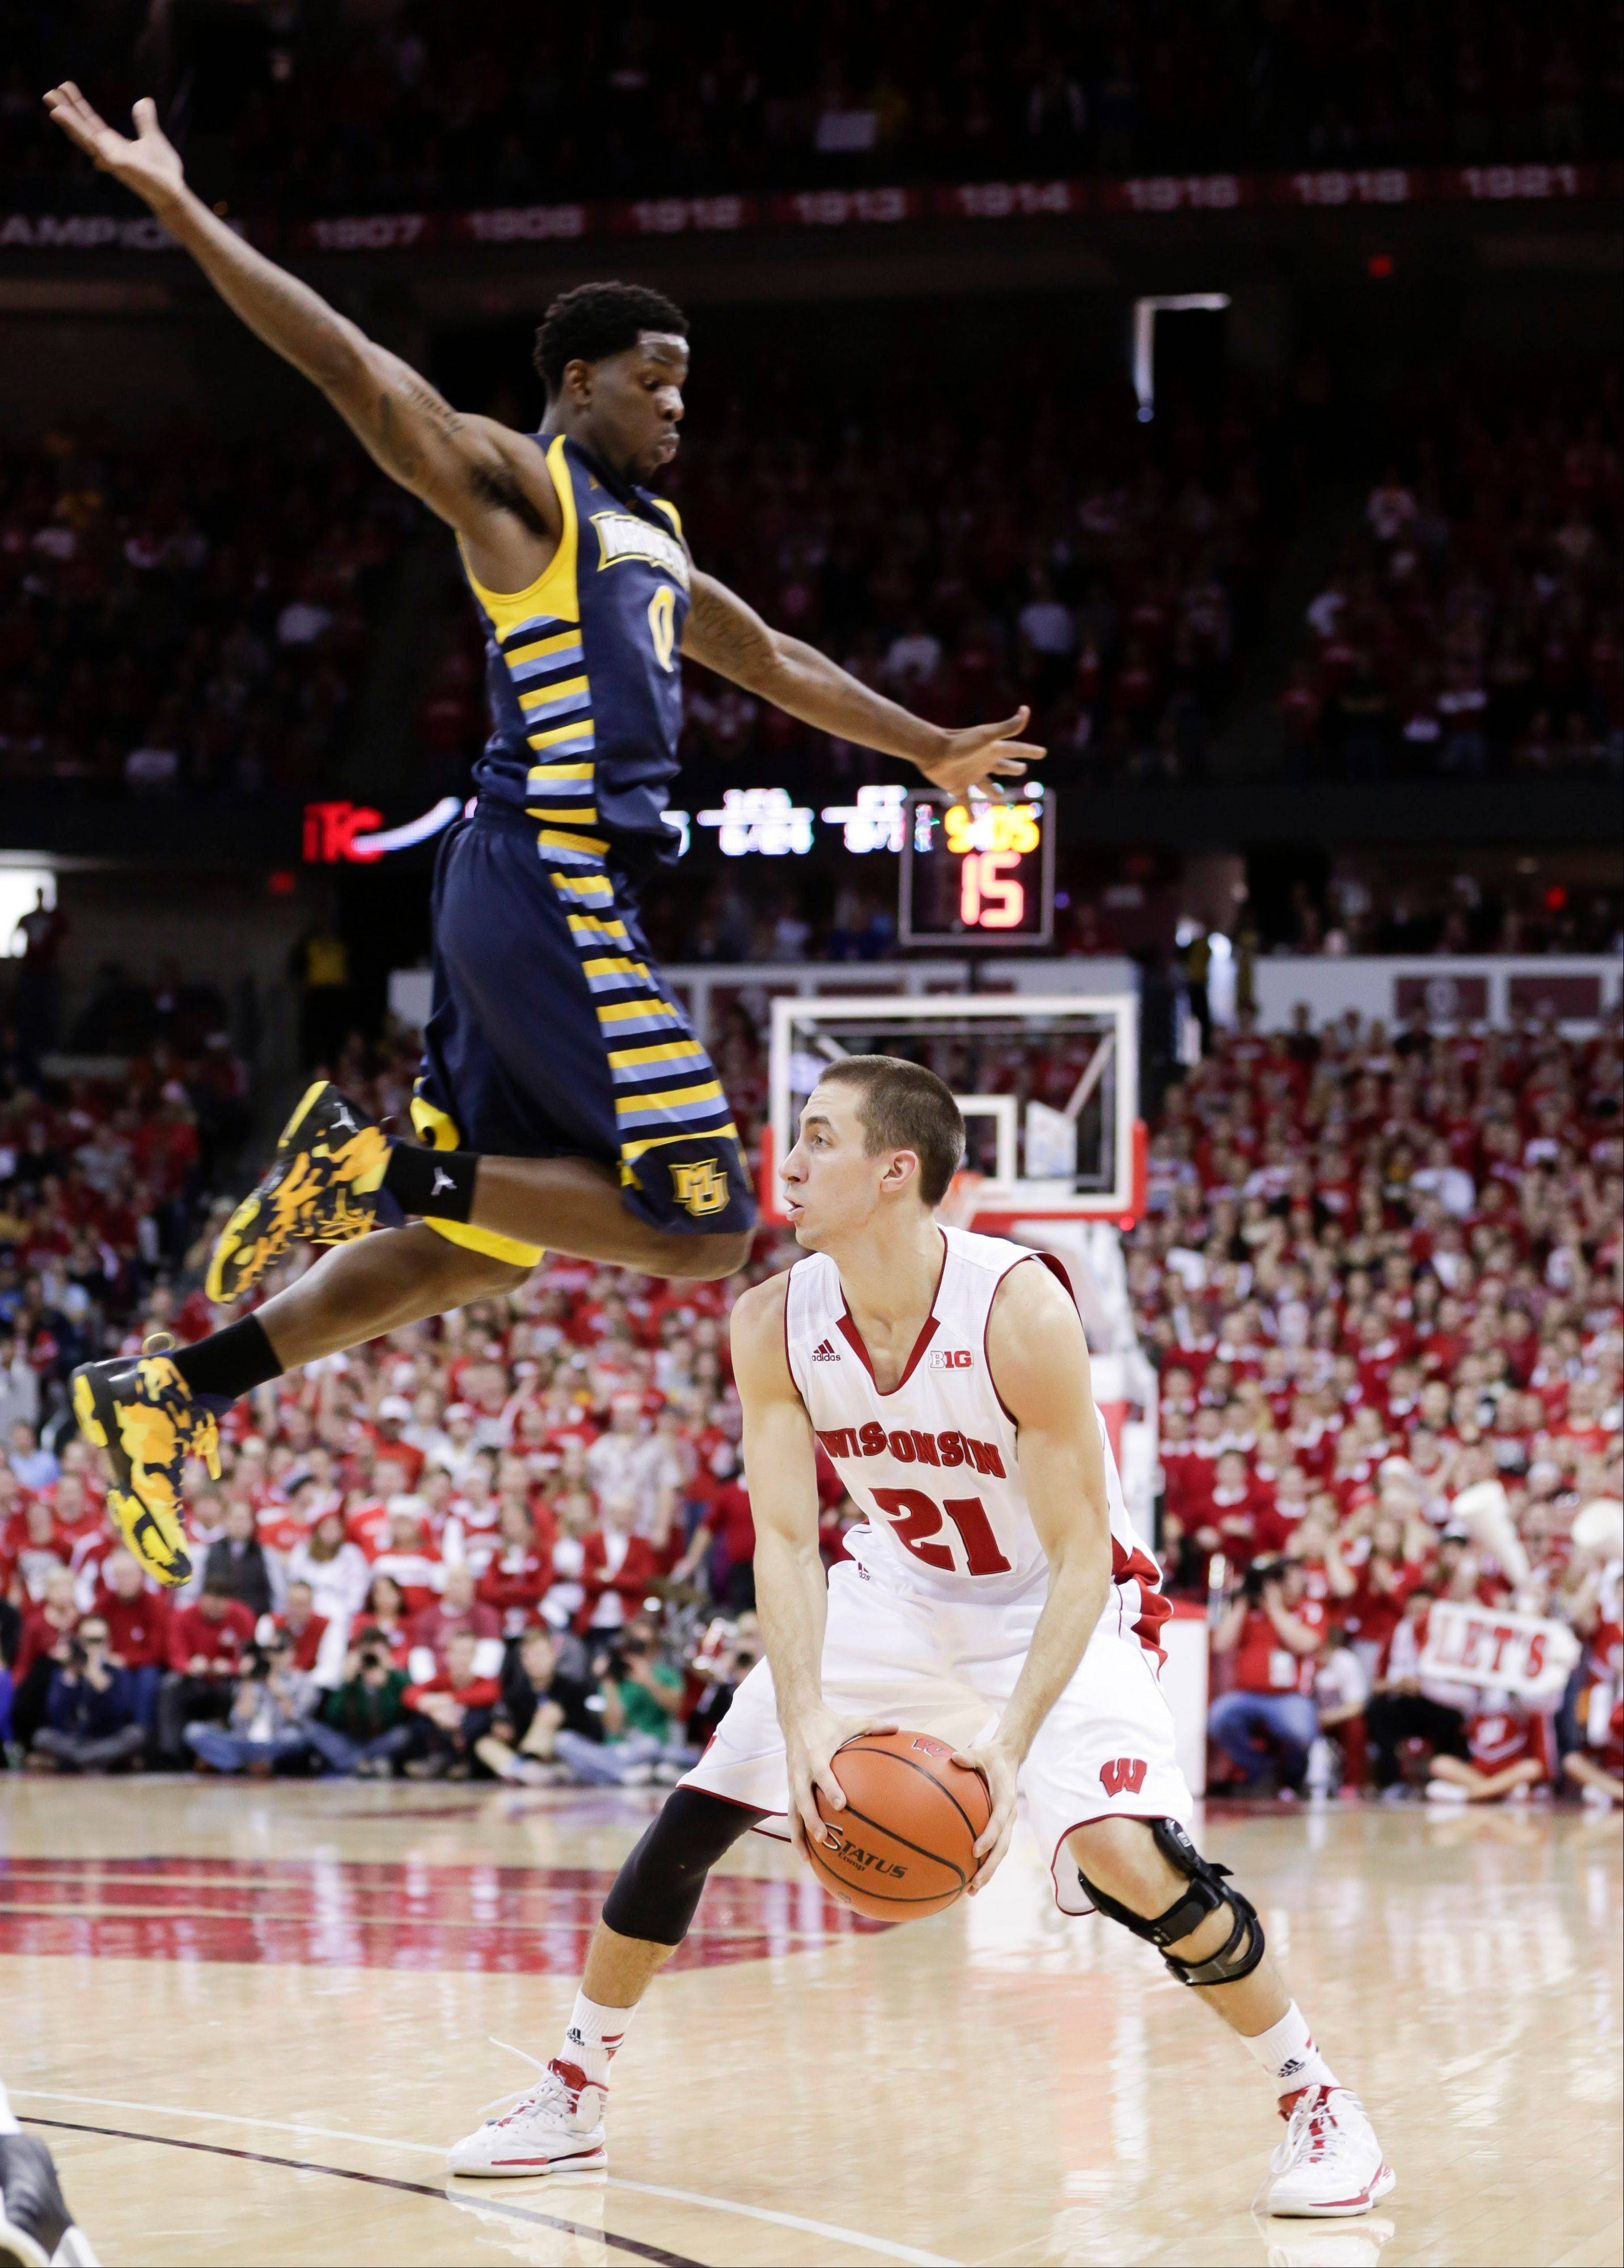 Wisconsin�s Josh Gasser looks to pass against Marquette�s Todd Mayo during the second half of Saturday�s game in Madison.